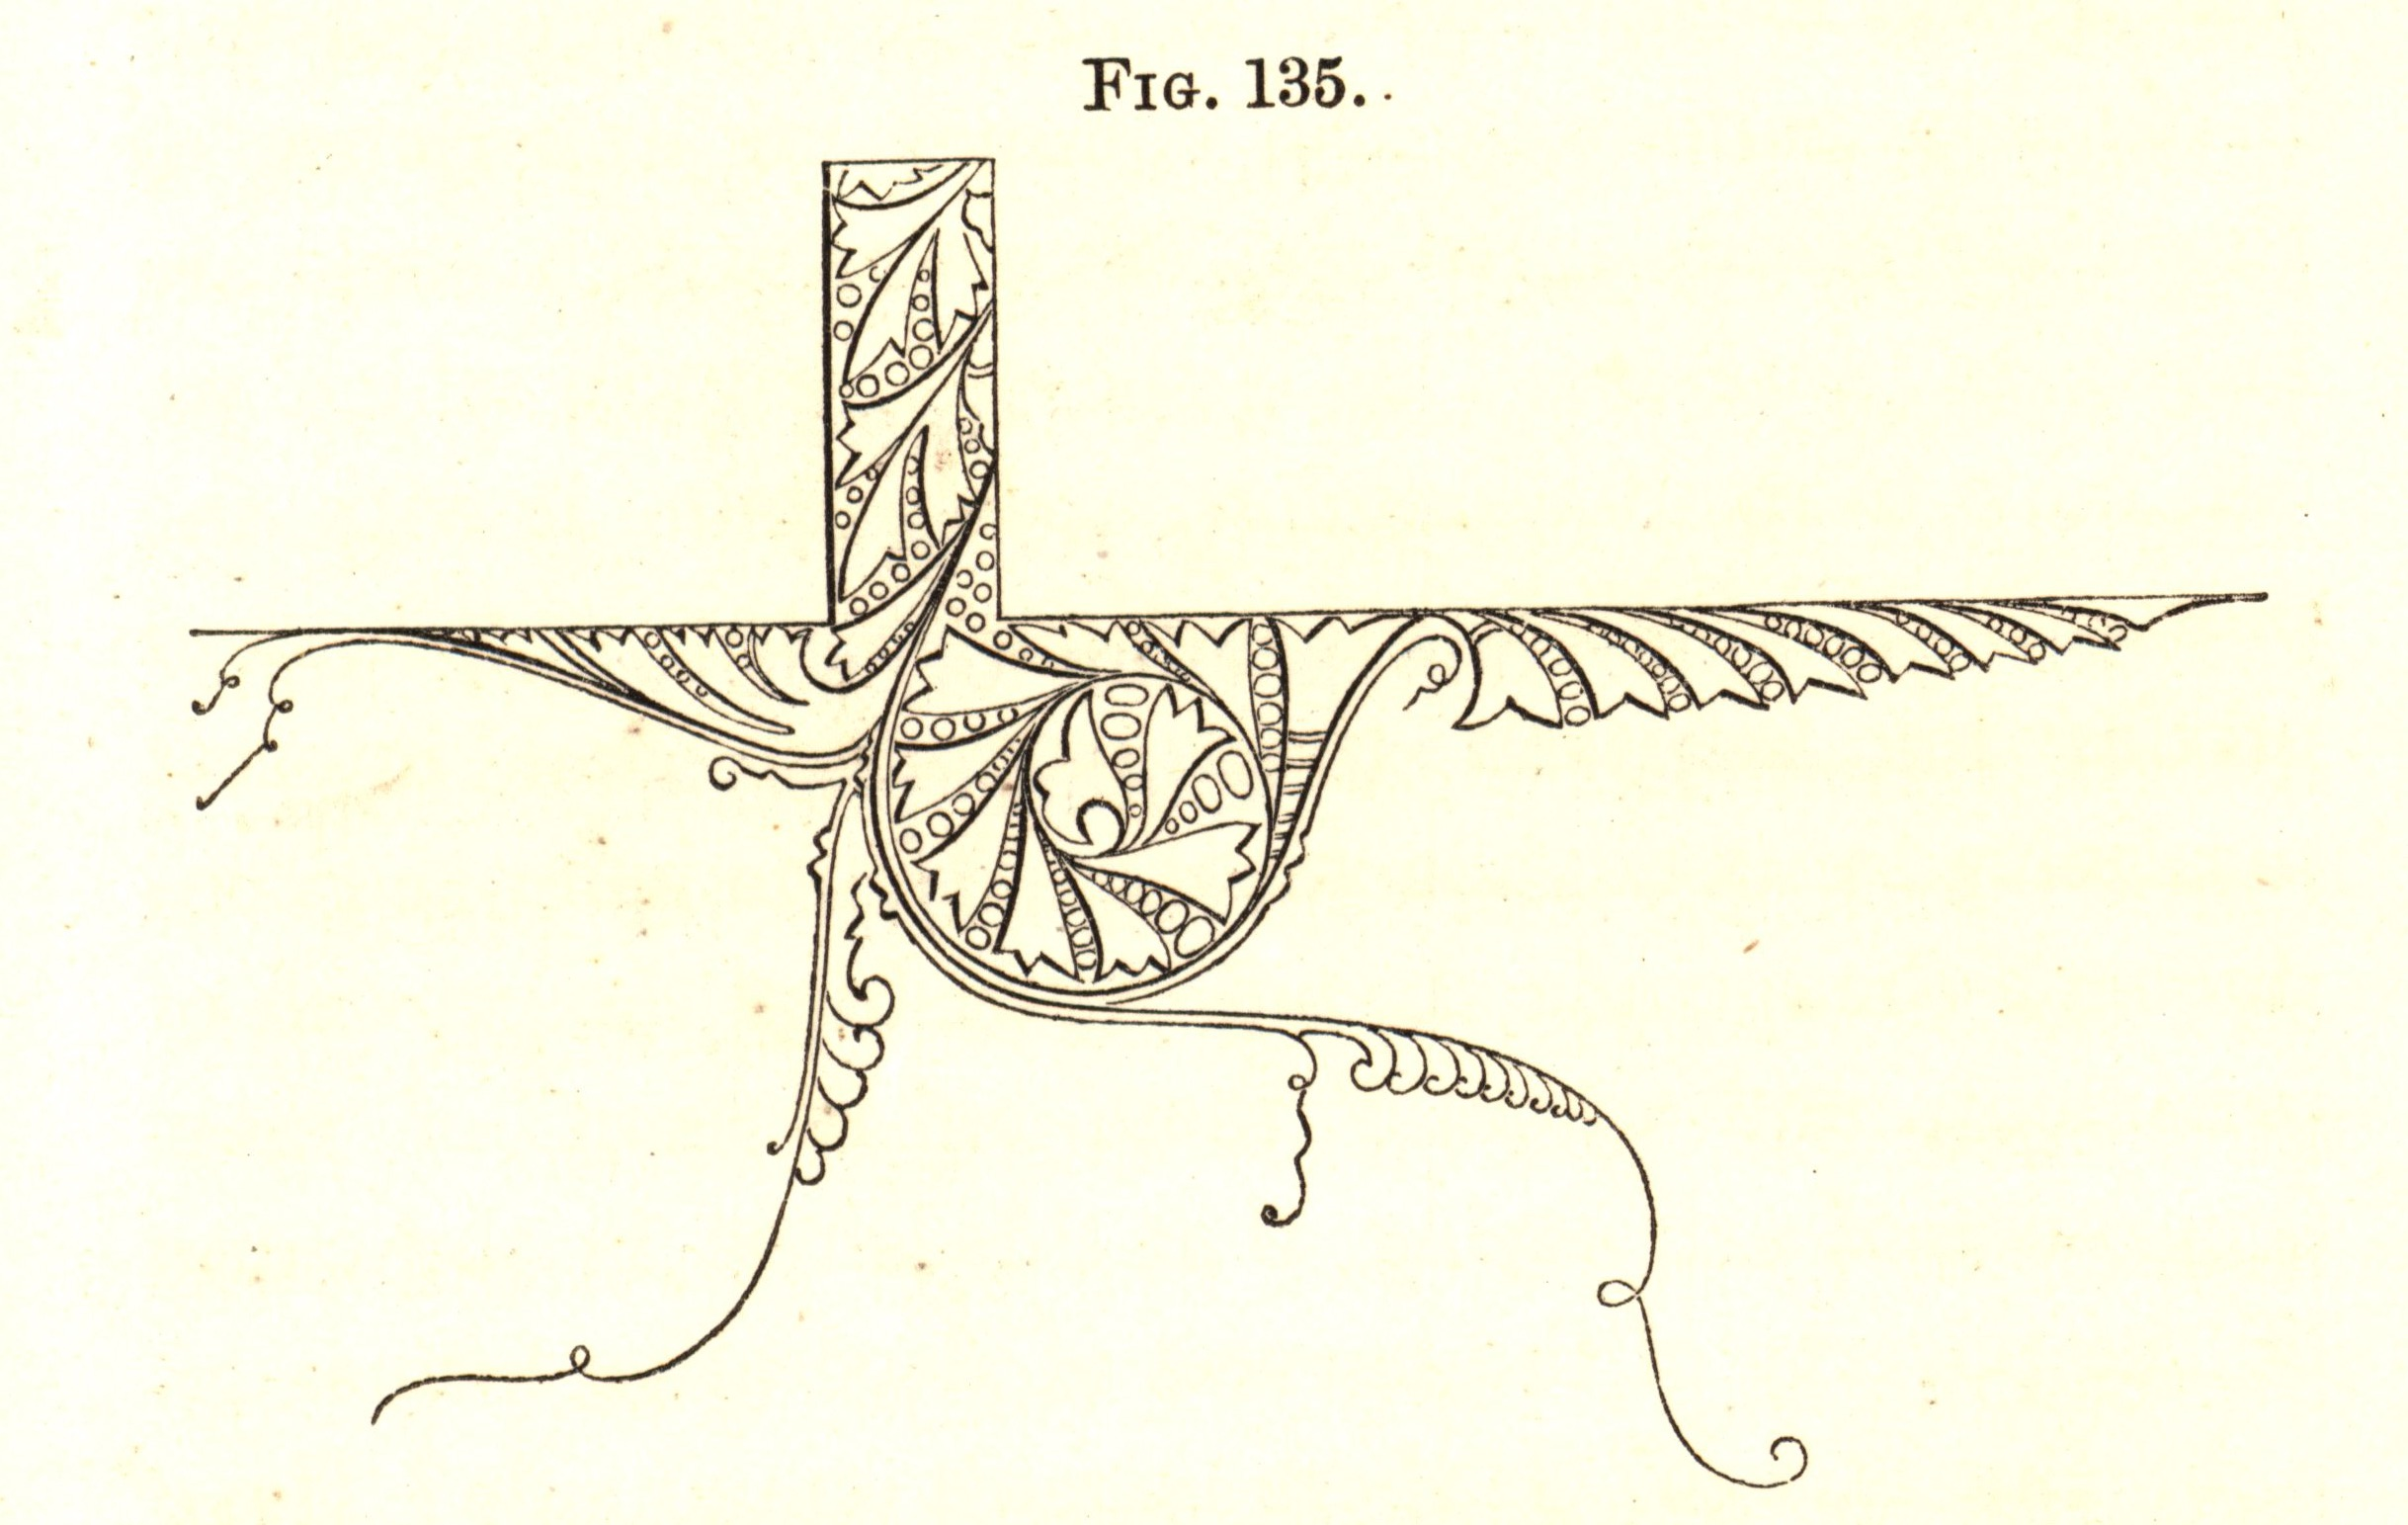 "Figure 11. Dresser, an ornament that ""may justly be said to embody two natural facts"" about water's behavior against a surface, the way it rebounds and the way it clings. Fig. 135 from _The Art of Decorative Design_. Courtesy of the Department of Special Collections, Stanford University Libraries."